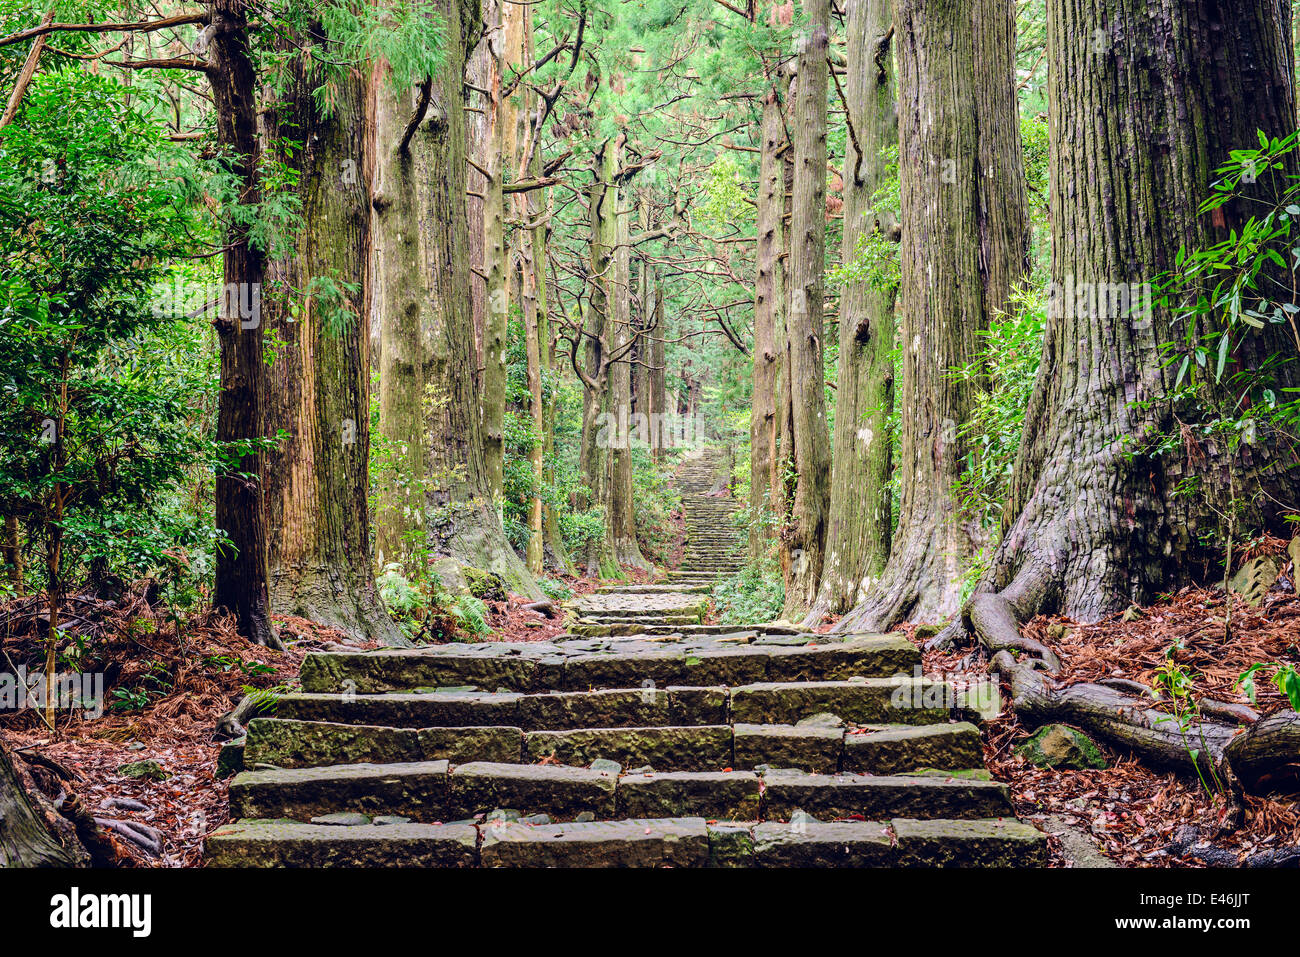 Kumano Kodo at Daimon-zaka, a sacred trail designated as a UNESCO World Heritage site in Nachi, Wakayama, Japan. - Stock Image